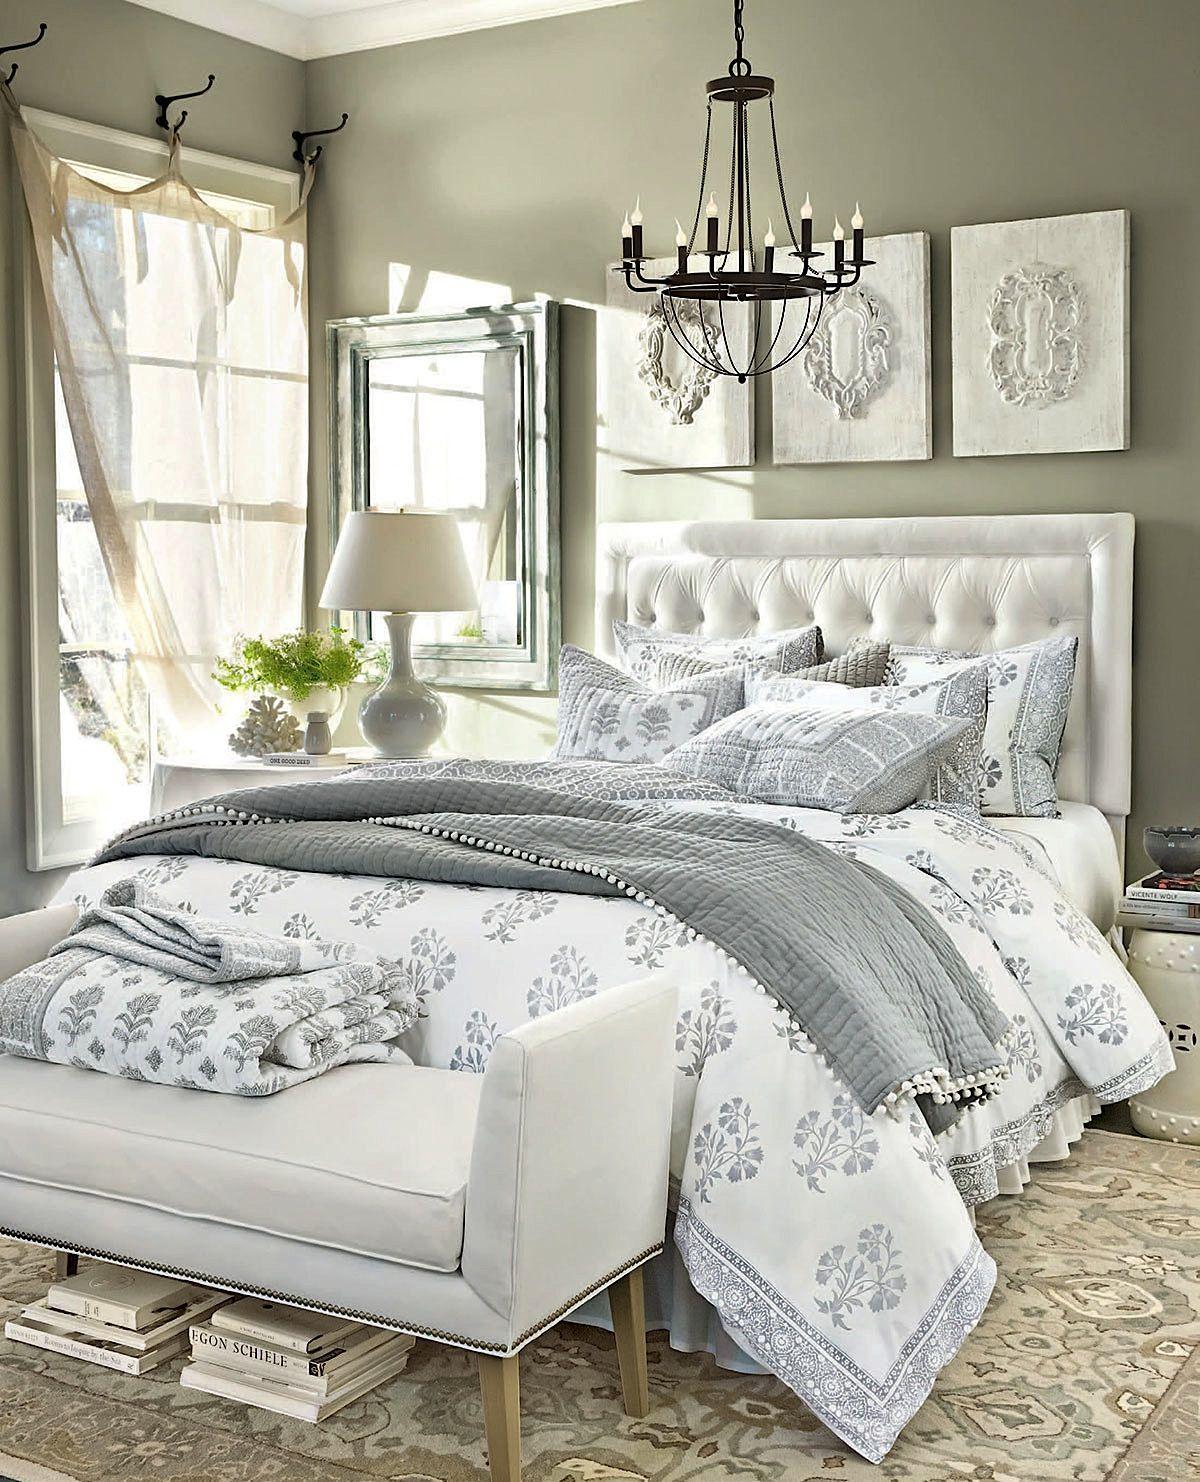 Bedroom Decorating Ideas White Bedroom Decor Home Bedroom